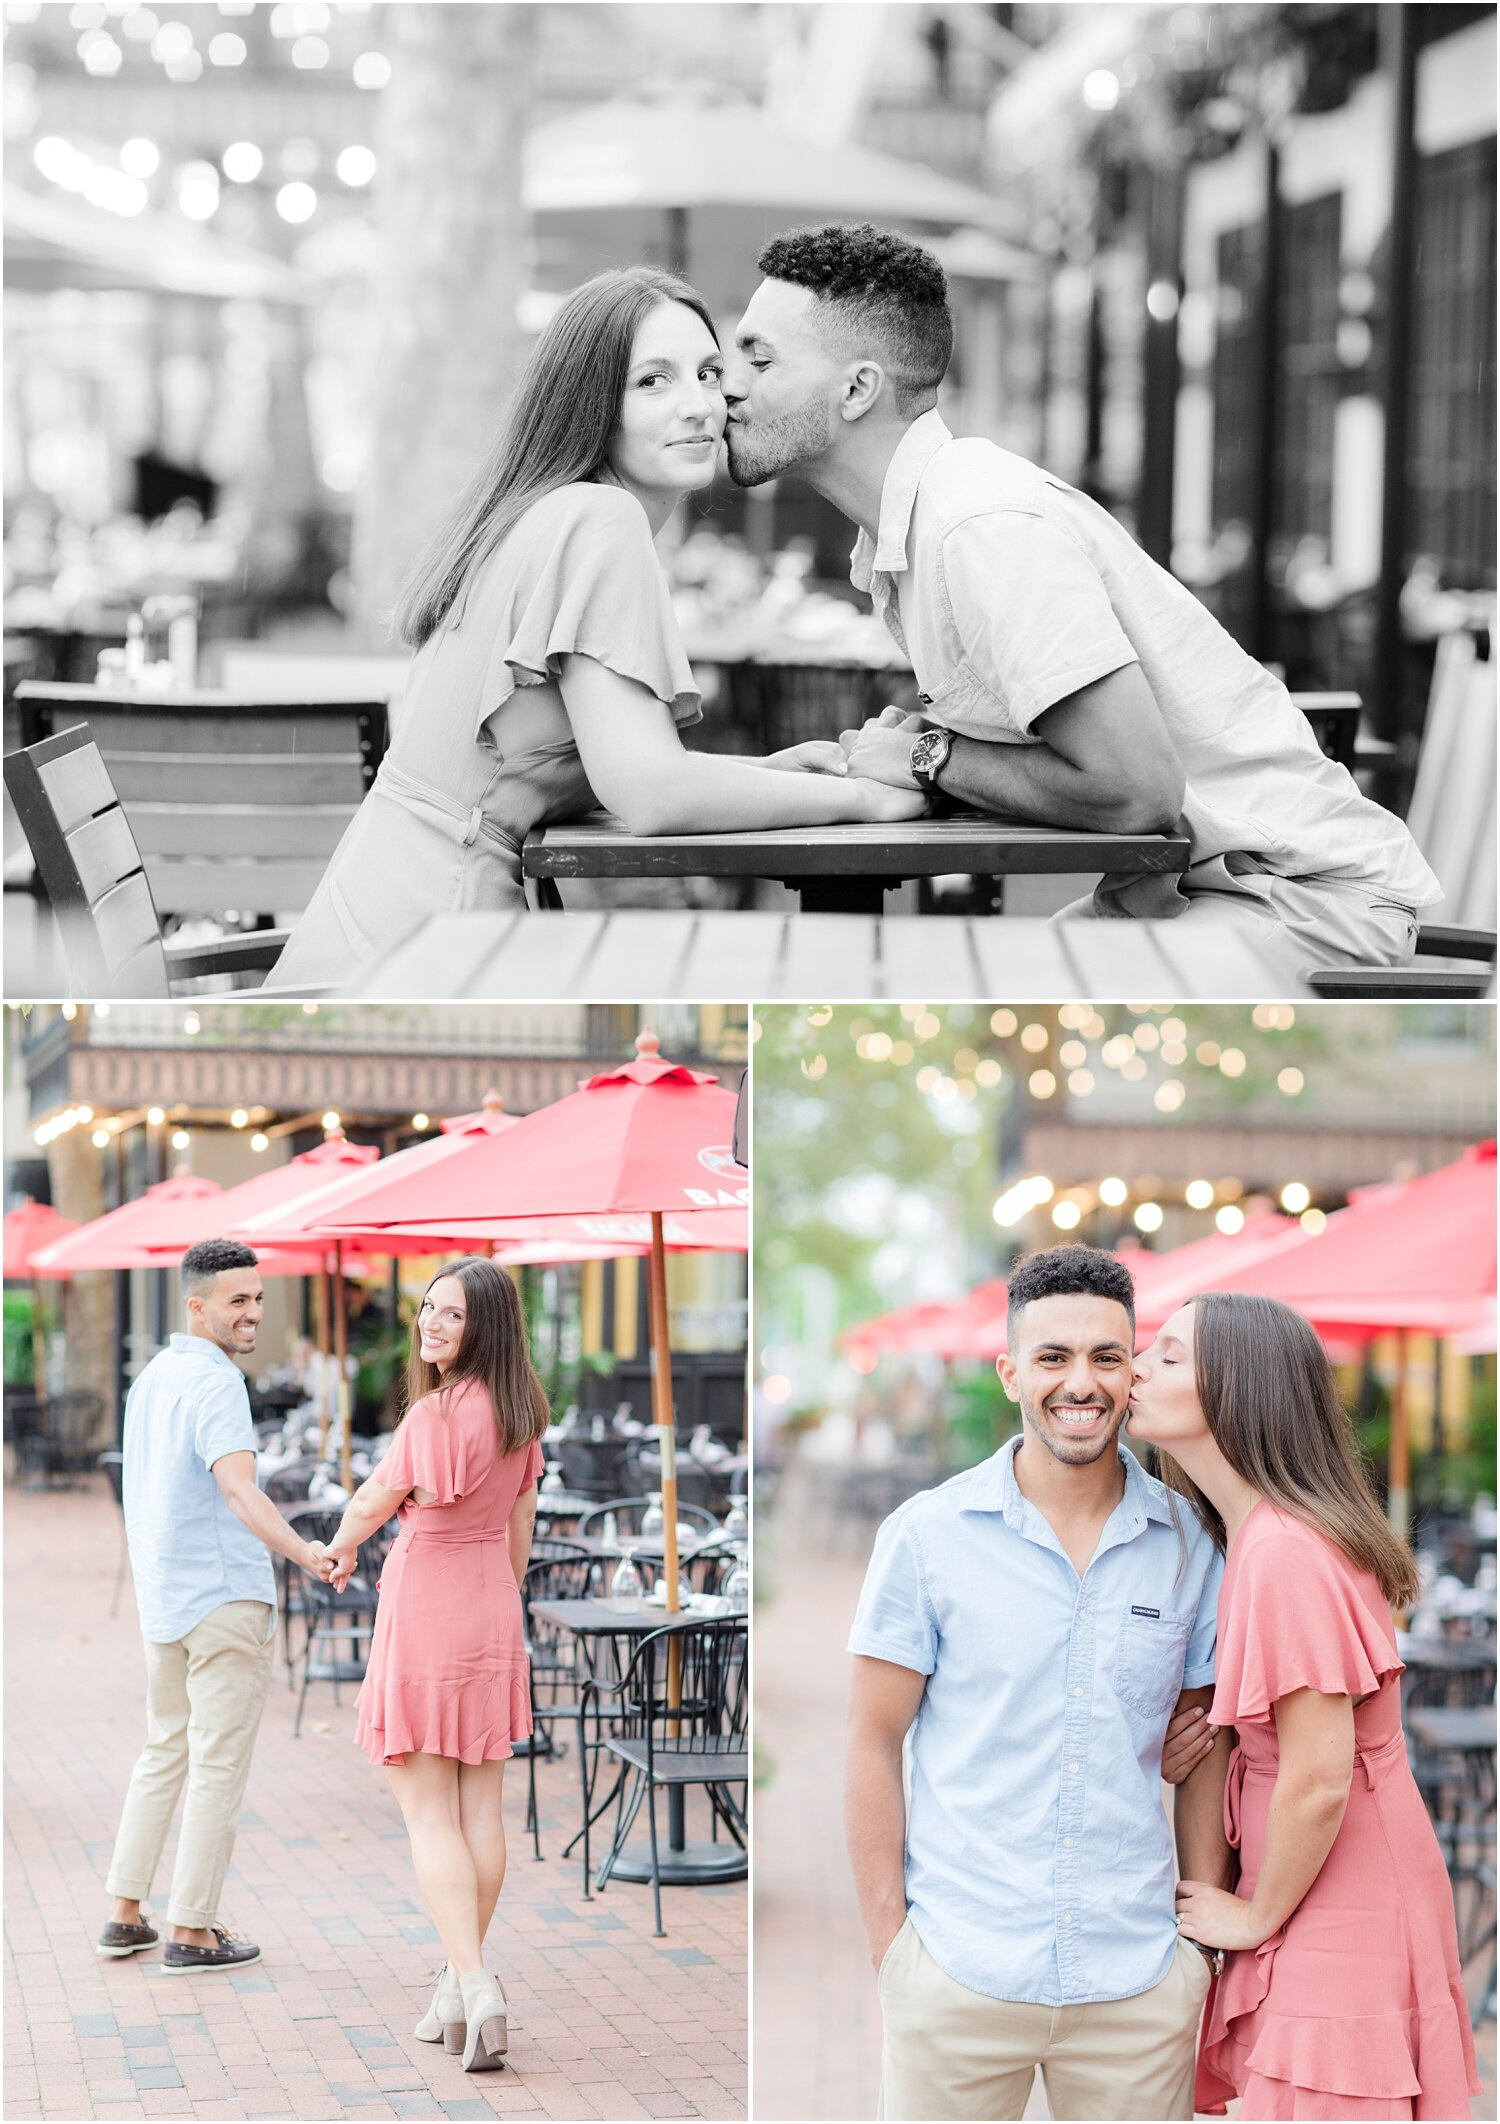 Engagement photos at The Court Jester in Freehold.